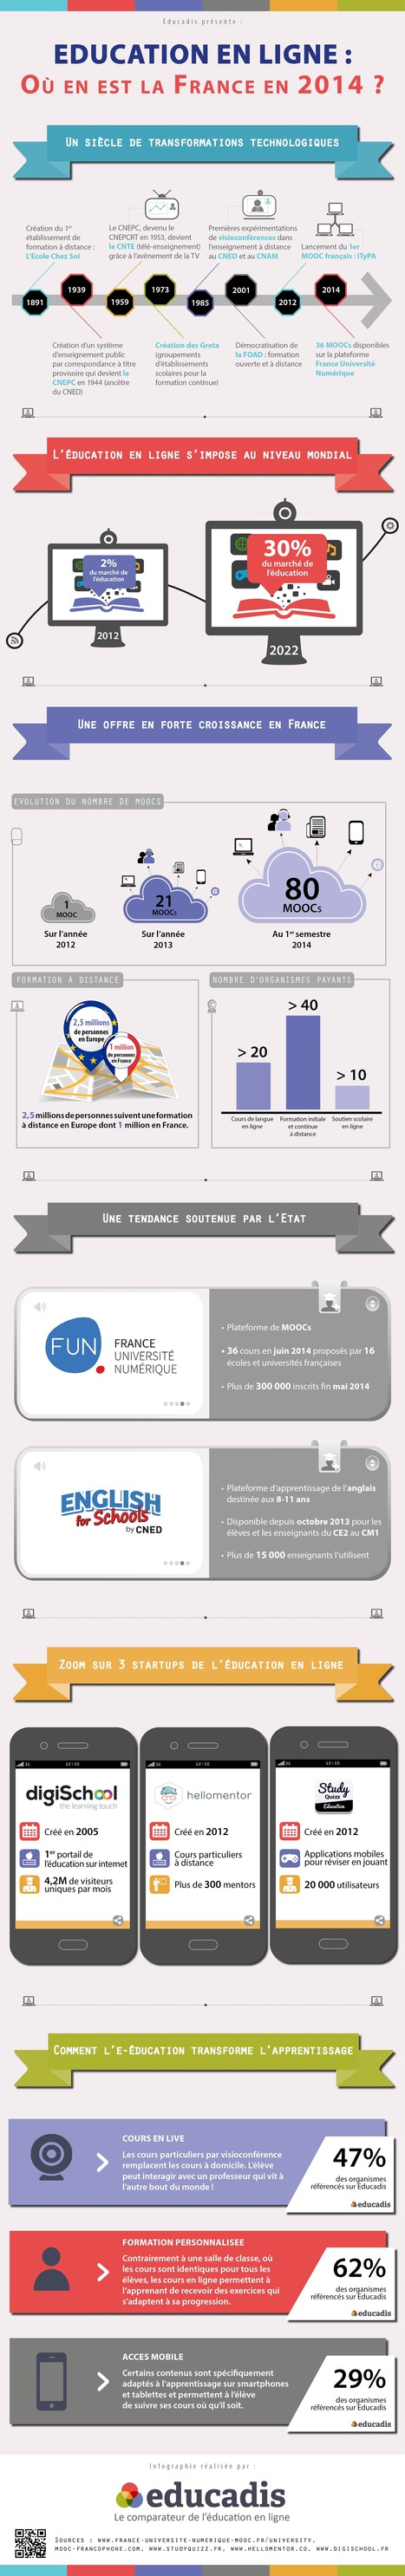 Education en ligne : Où en est la France en 2014 [Infographie] | Formation 2.0 | Scoop.it